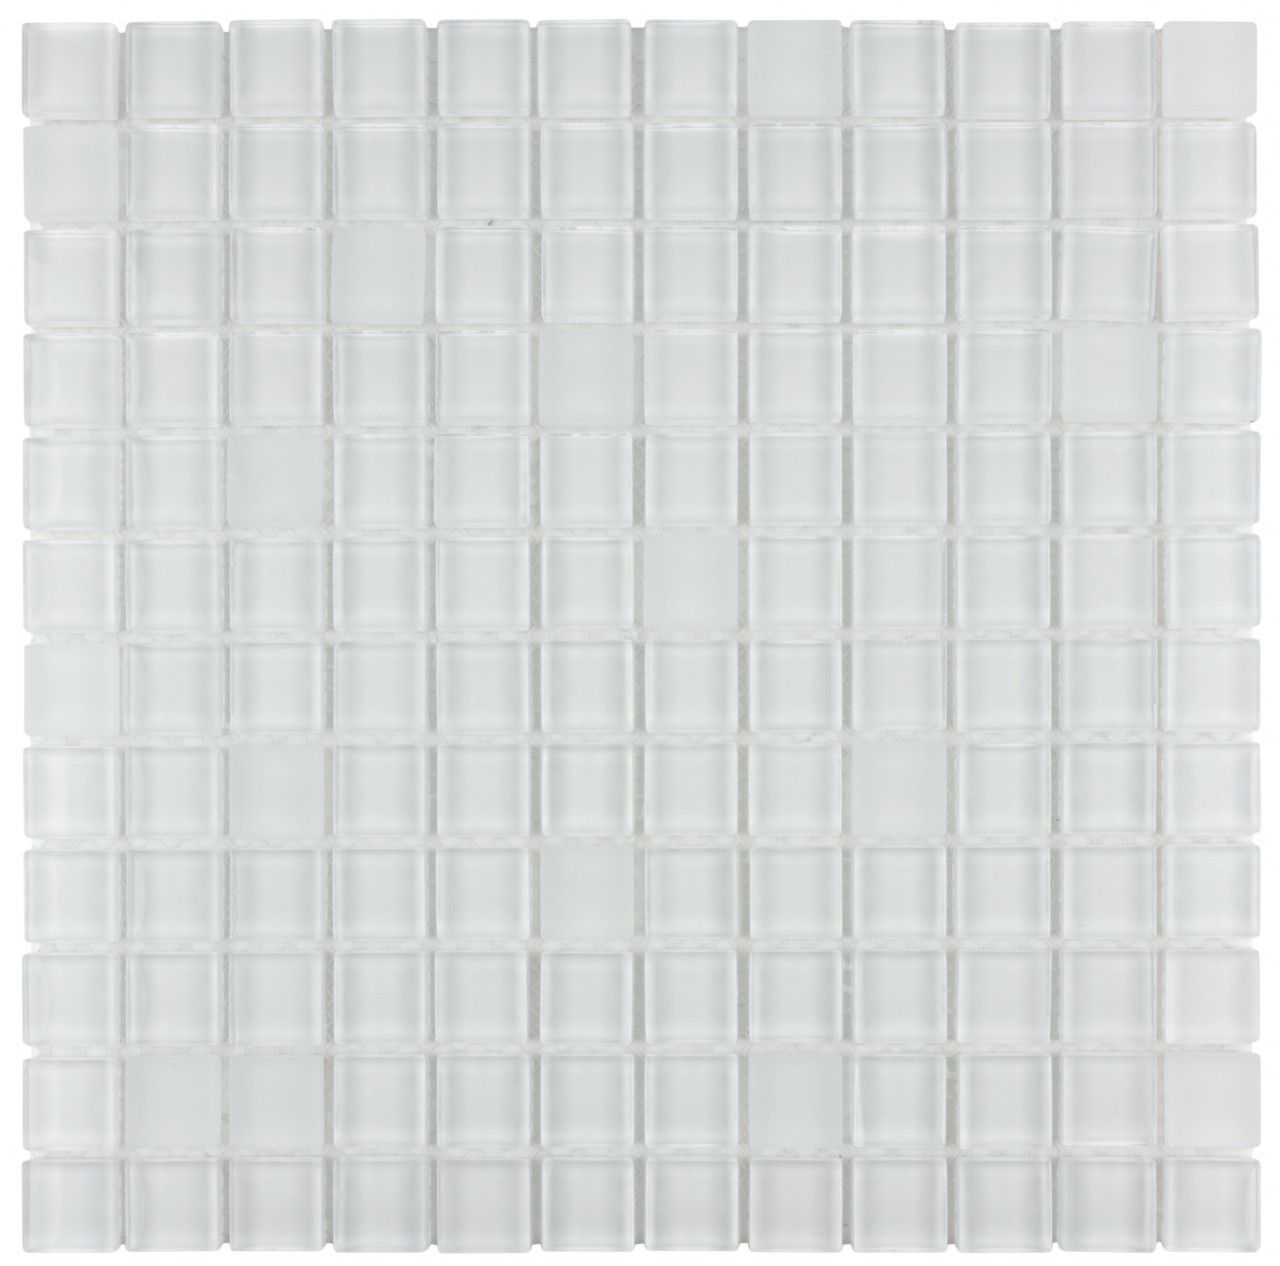 Mineral Tiles Glass Mosaic Tile White Blend 1x1 14 92 Http Www Mineraltiles Com Glass Mosaic Tile White Blend Mosaic Glass Glass Mosaic Tiles Glass Tile